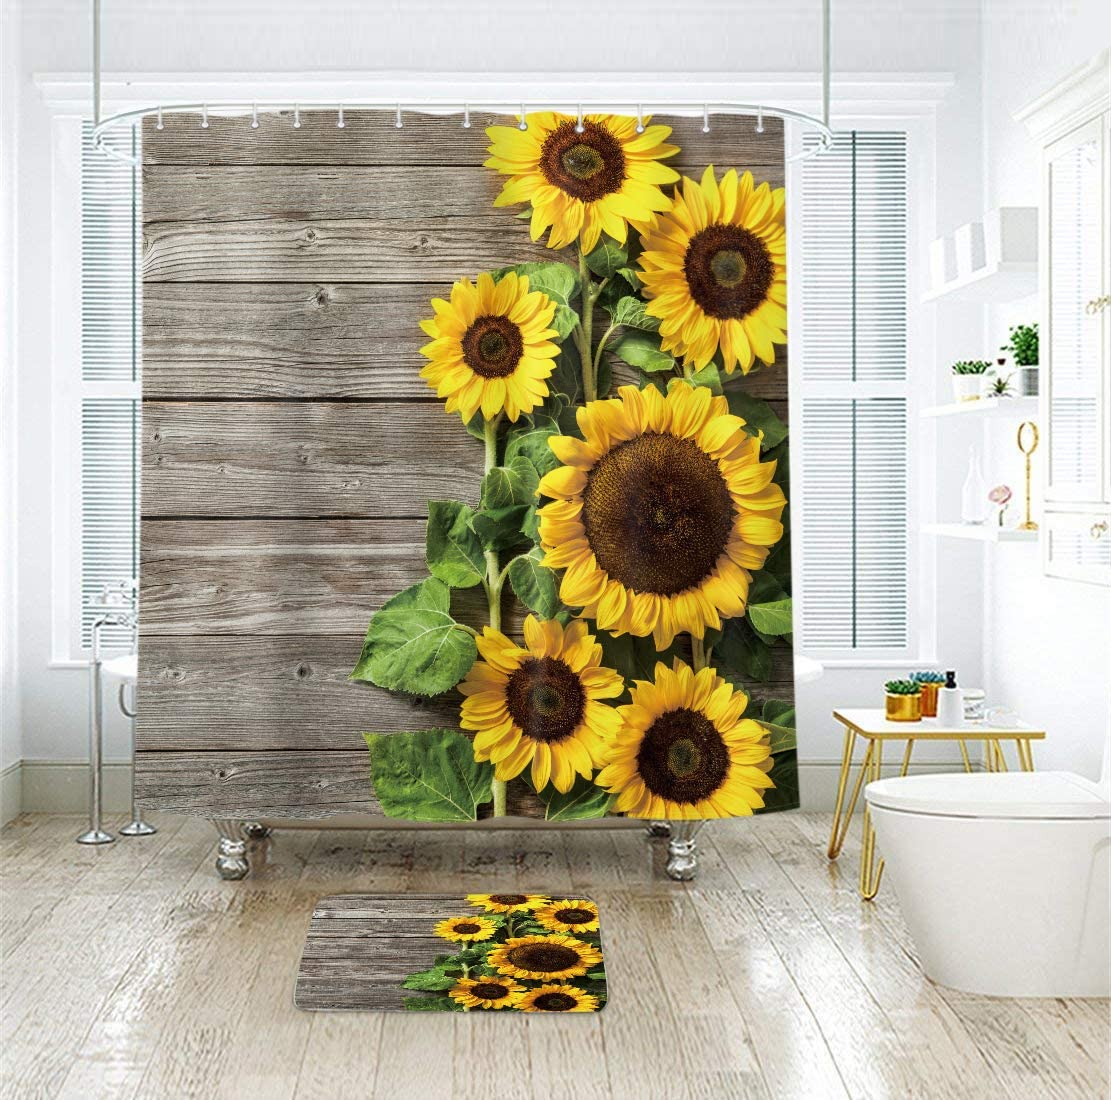 Sunflower Shower Curtain Wood Rustic Floral Spring Blooming Flower Bath Curtains